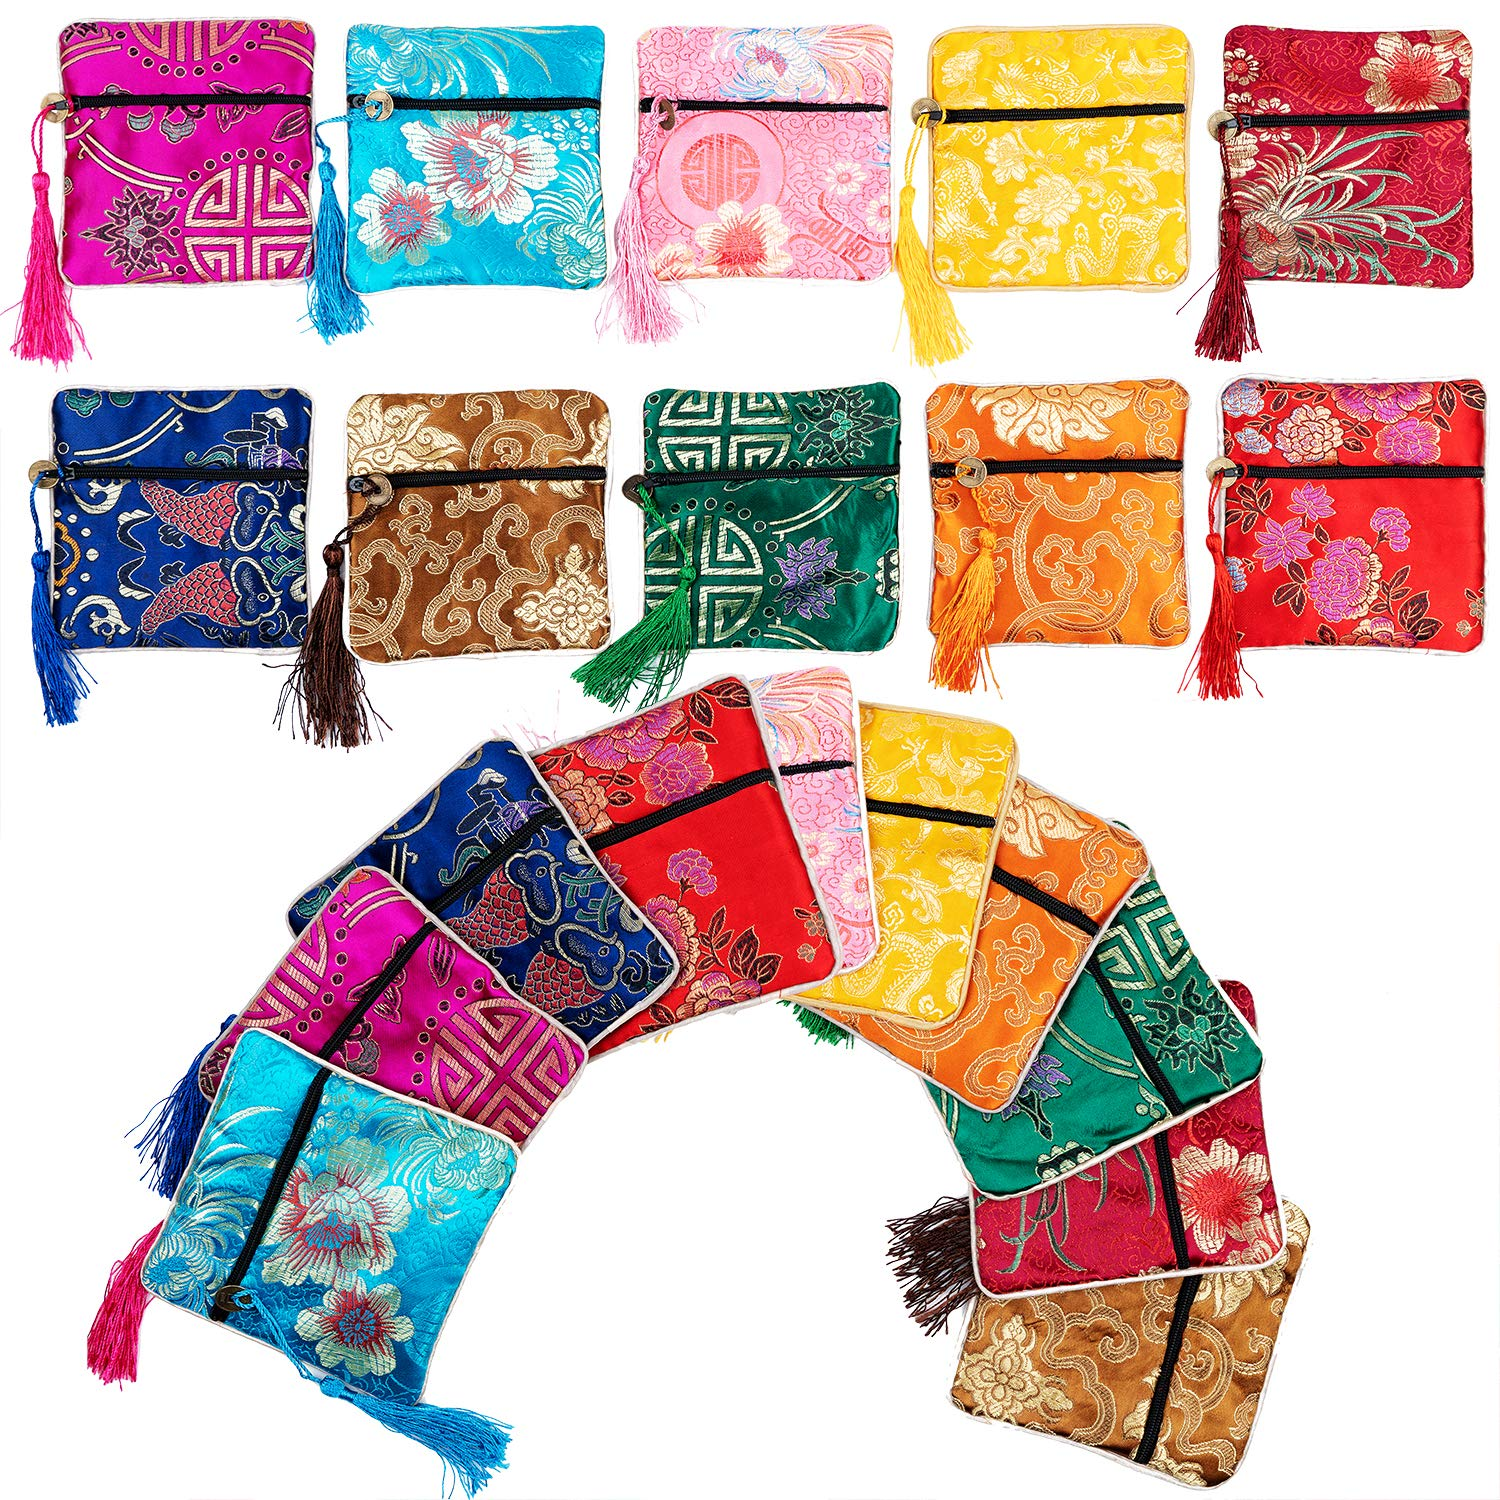 30PCS Silk Brocade Coin Bags Pouches with Drawstring, Jewelry Gift Bag Candy Sachet Pouch Small Chinese Embroidered Organizers Pocket for Women Girls Dice Necklaces Earrings Bracelets, Mix Colors